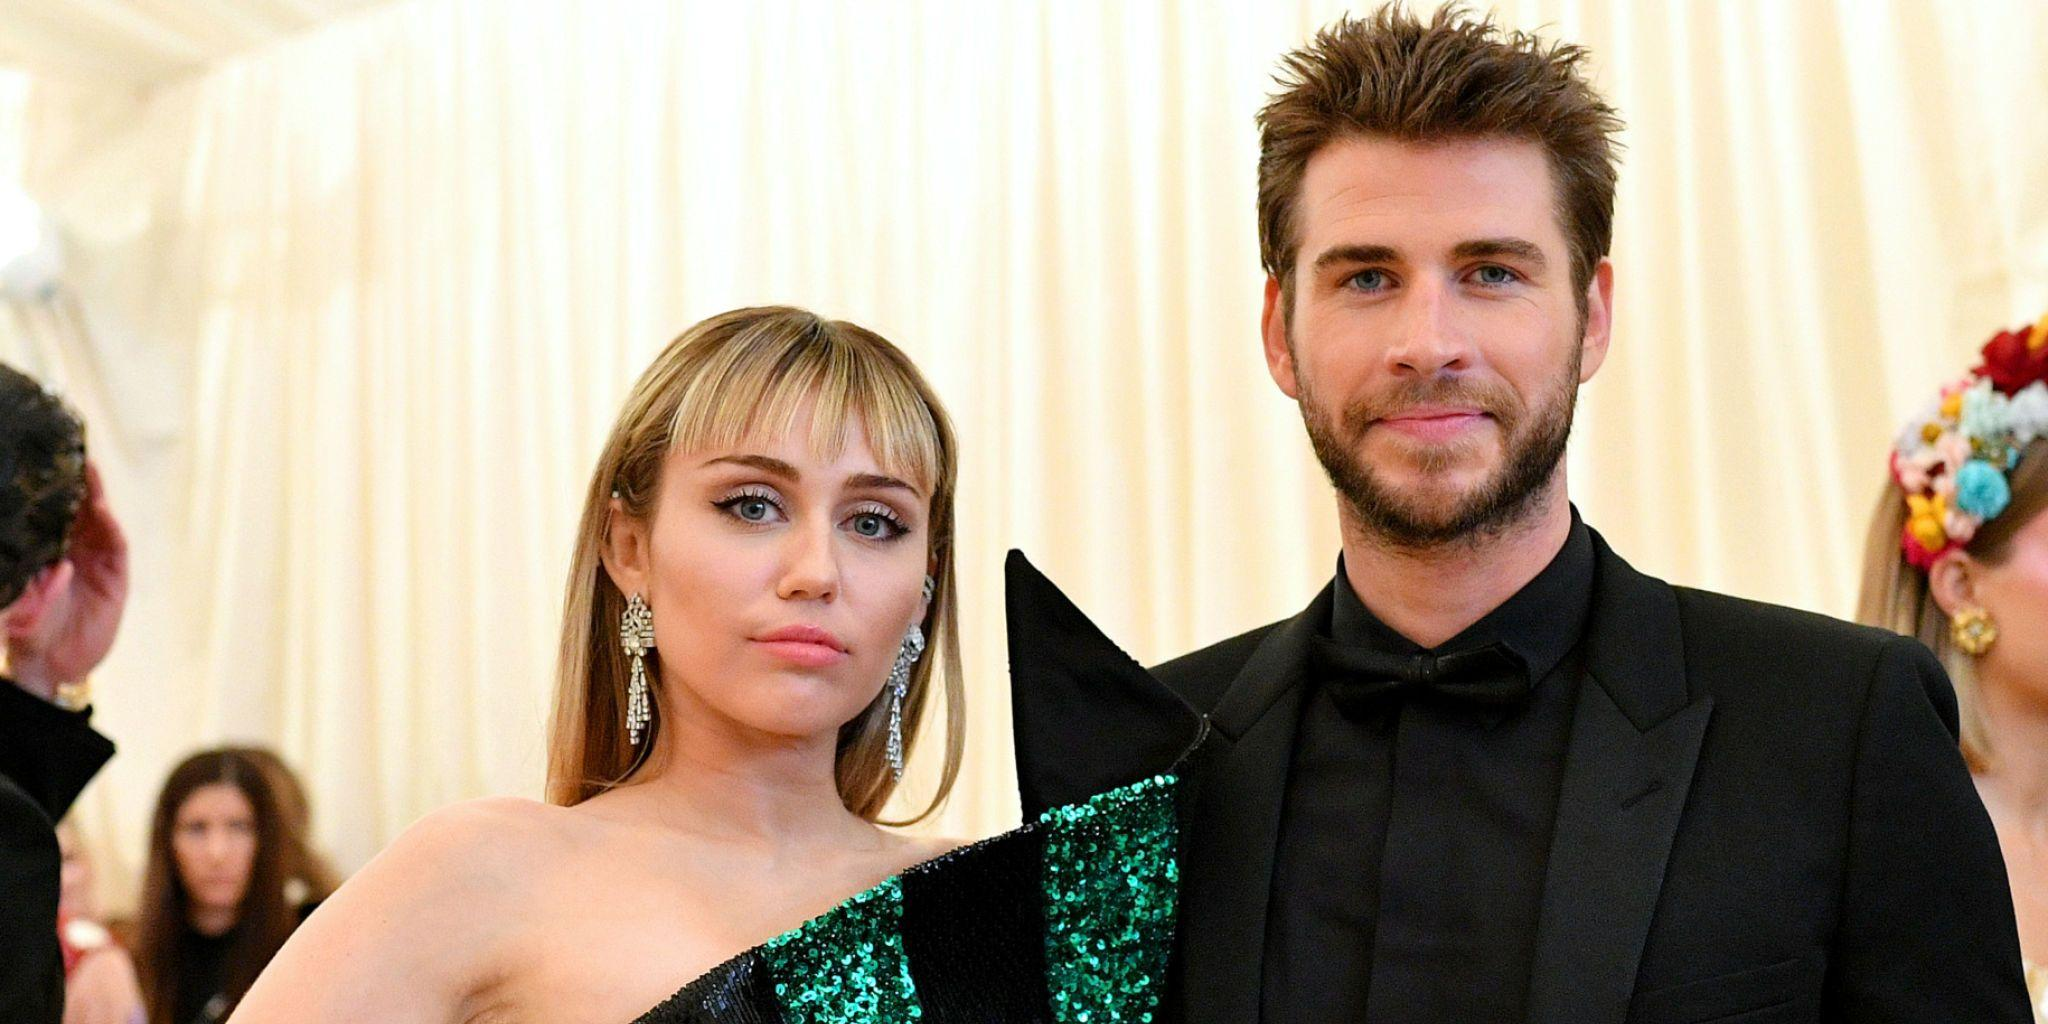 Miley Cyrus And Liam Hemsworth - Conflicting Insider Reports Claim Either His 'Drug Use' Or Her Infidelity Caused Their Split